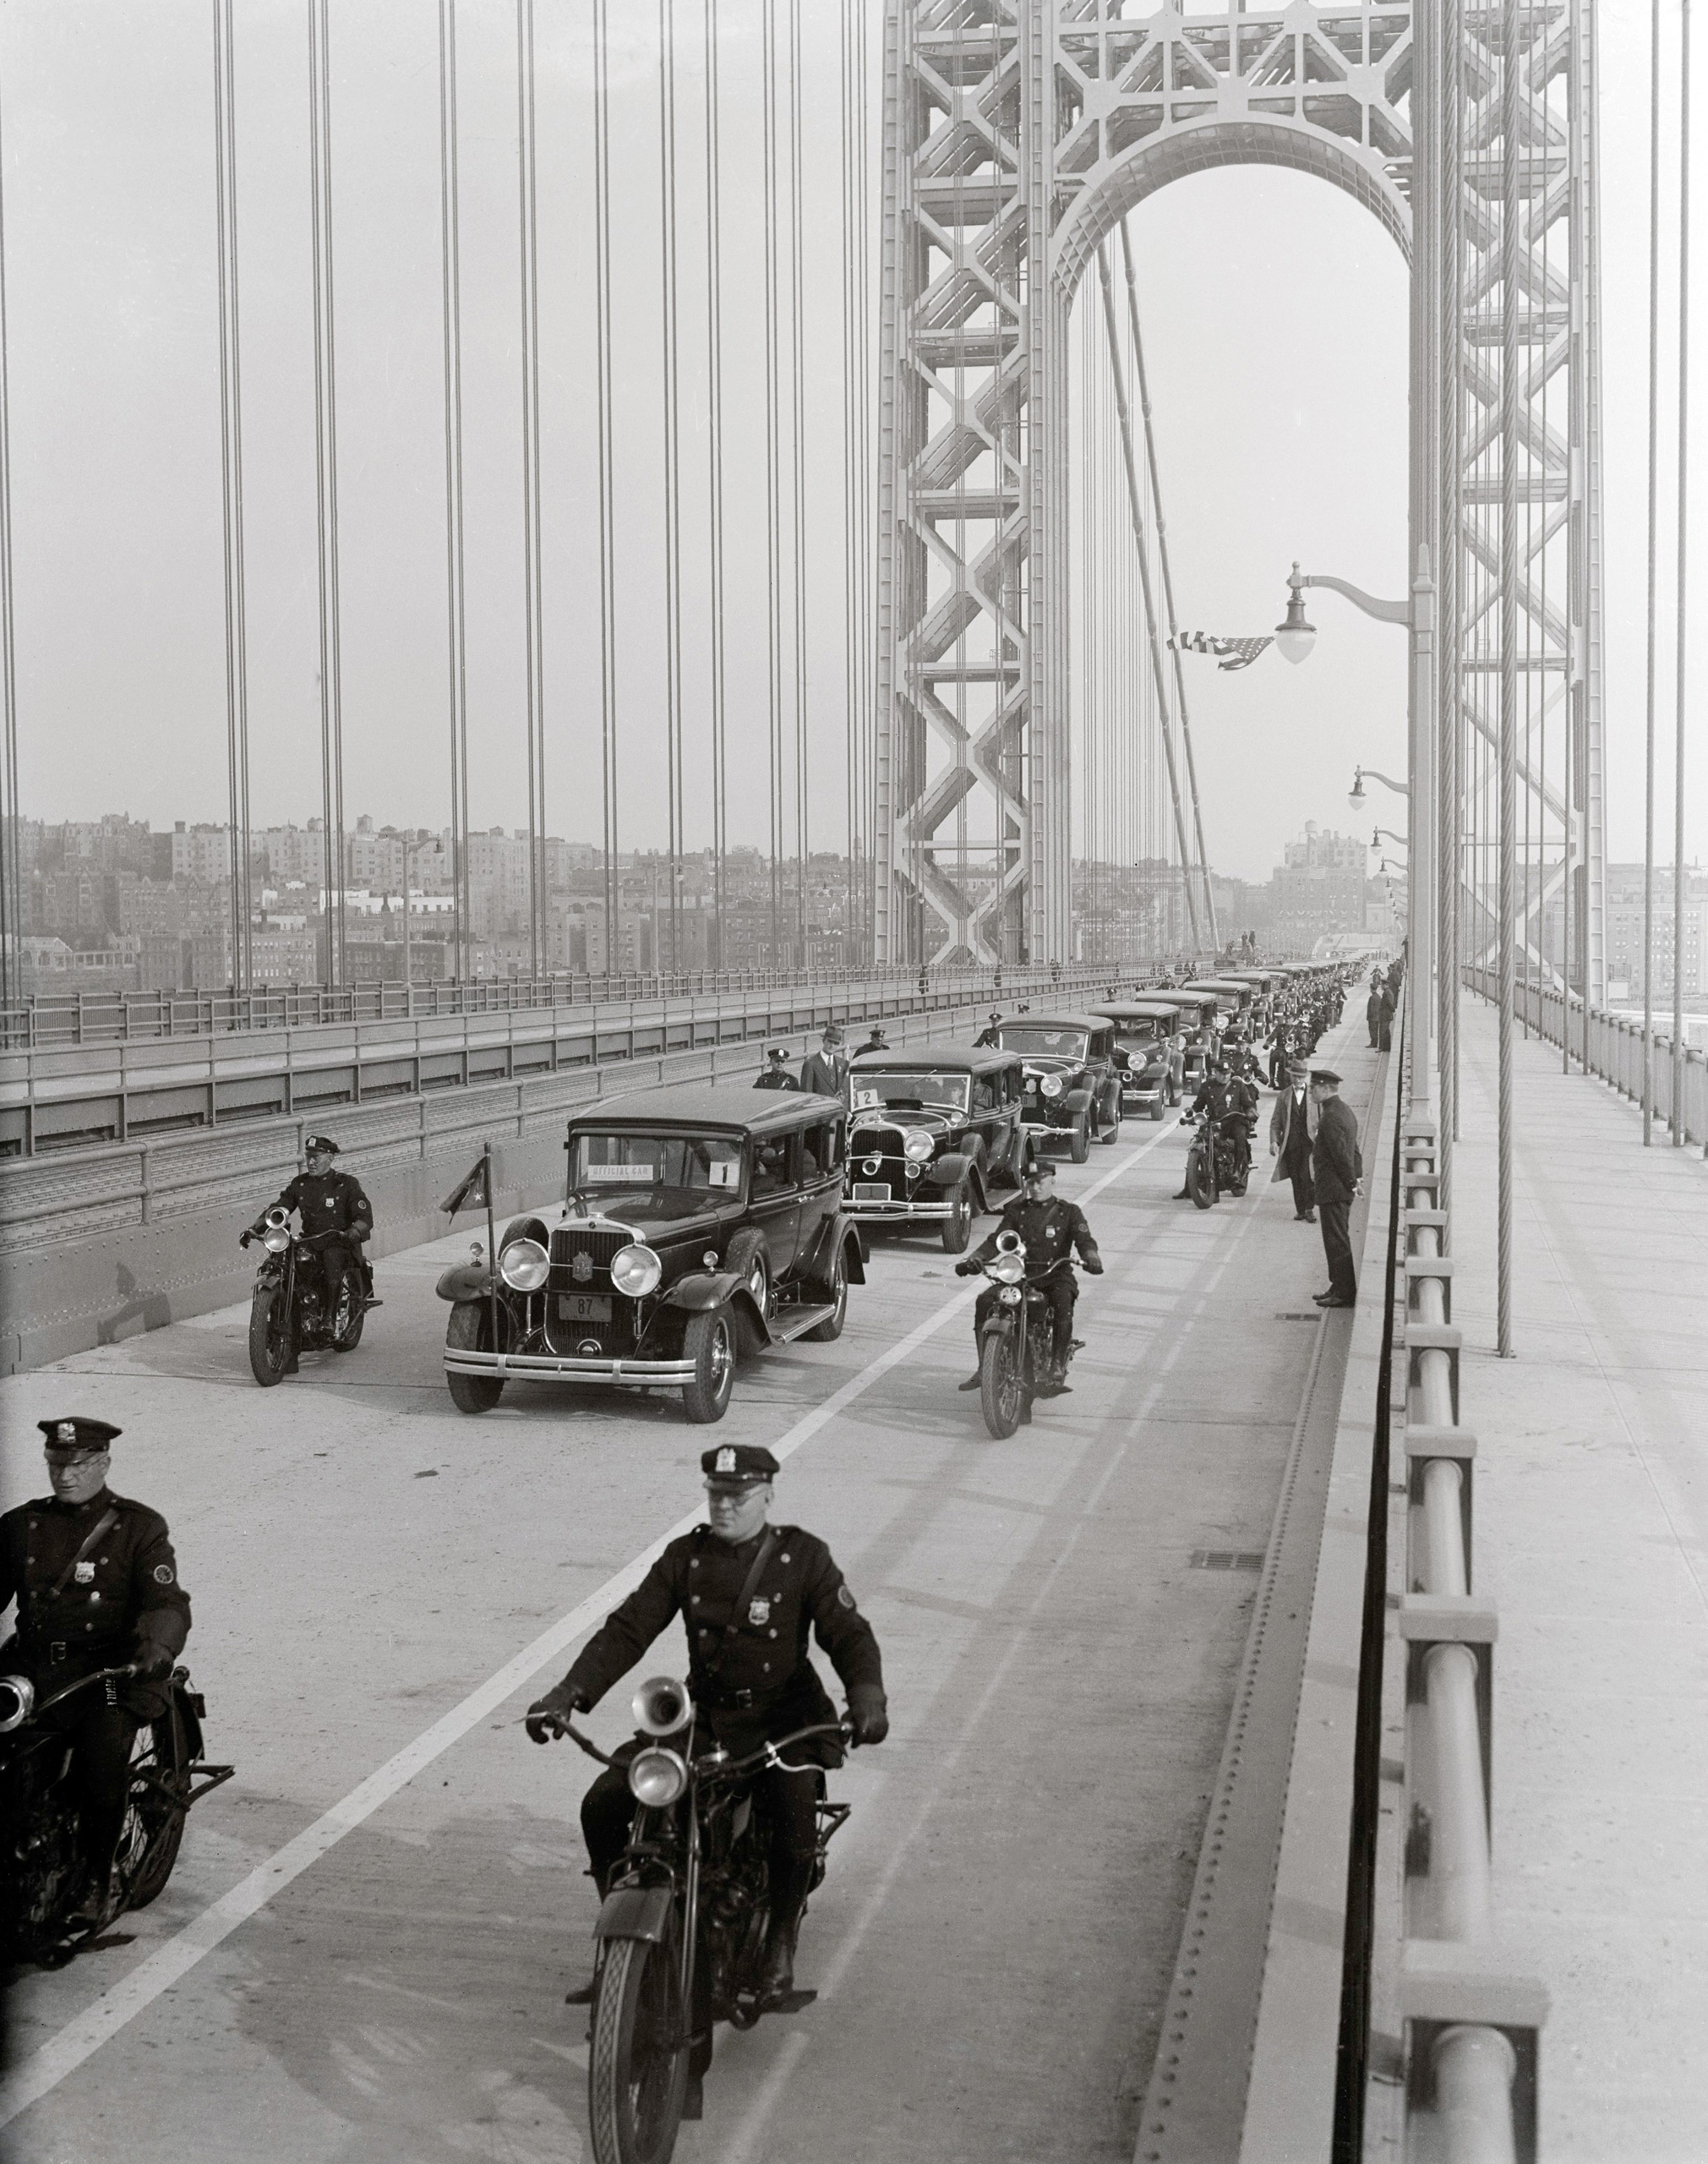 The New George Washington Memorial Bridge, a modern miracle, connecting New York with New Jersey, was opened, Oct. 24, 1931, with elaborate ceremonies in which Governor Roosevelt of New York, Governor Larson of New Jersey and Secretary of the Navy Adams participated. Here, official cars cross the huge span for the dedication ceremonies.